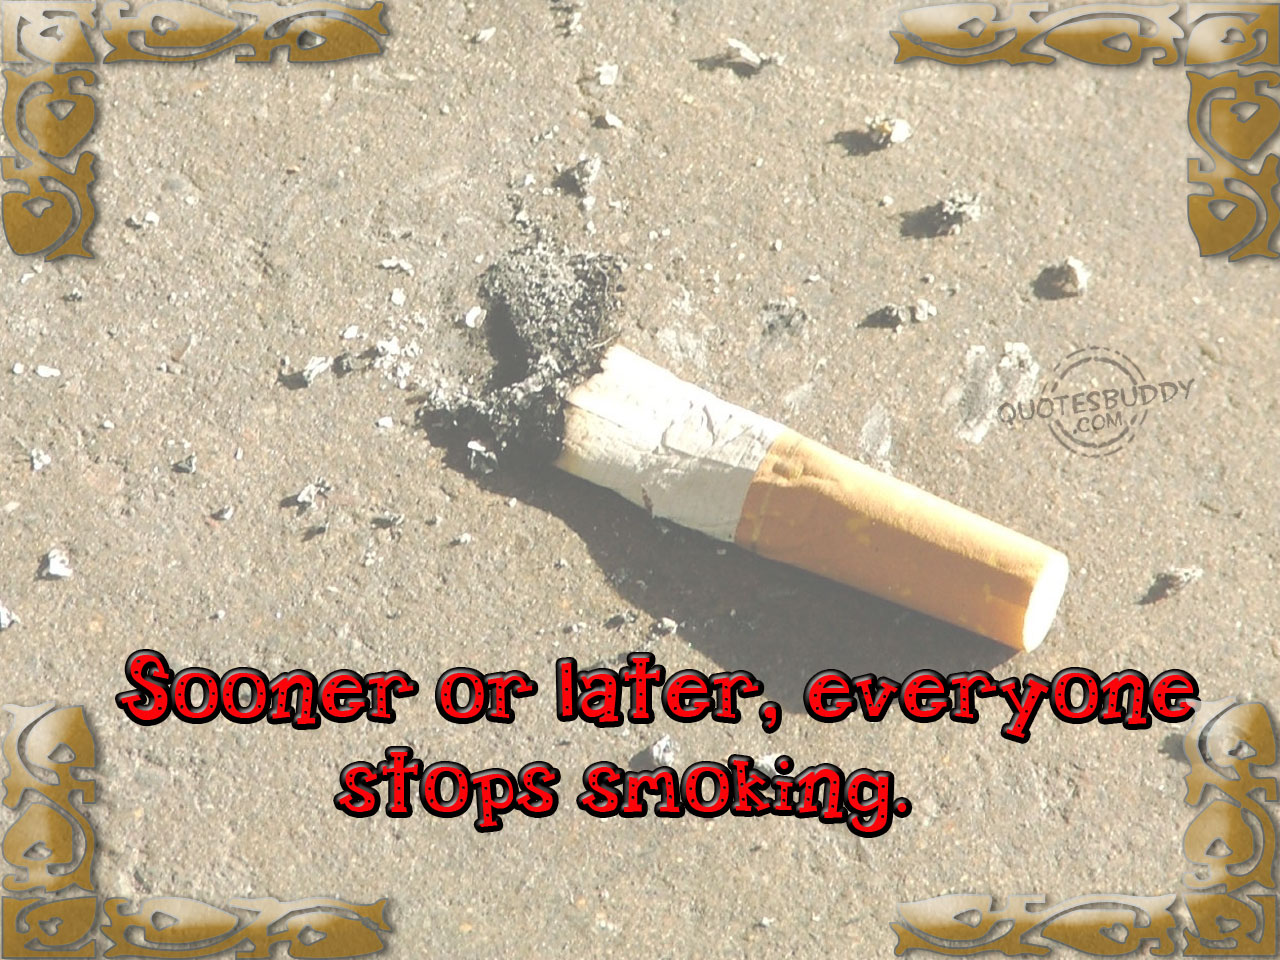 Sooner-or-later-everyone-stops-smoking